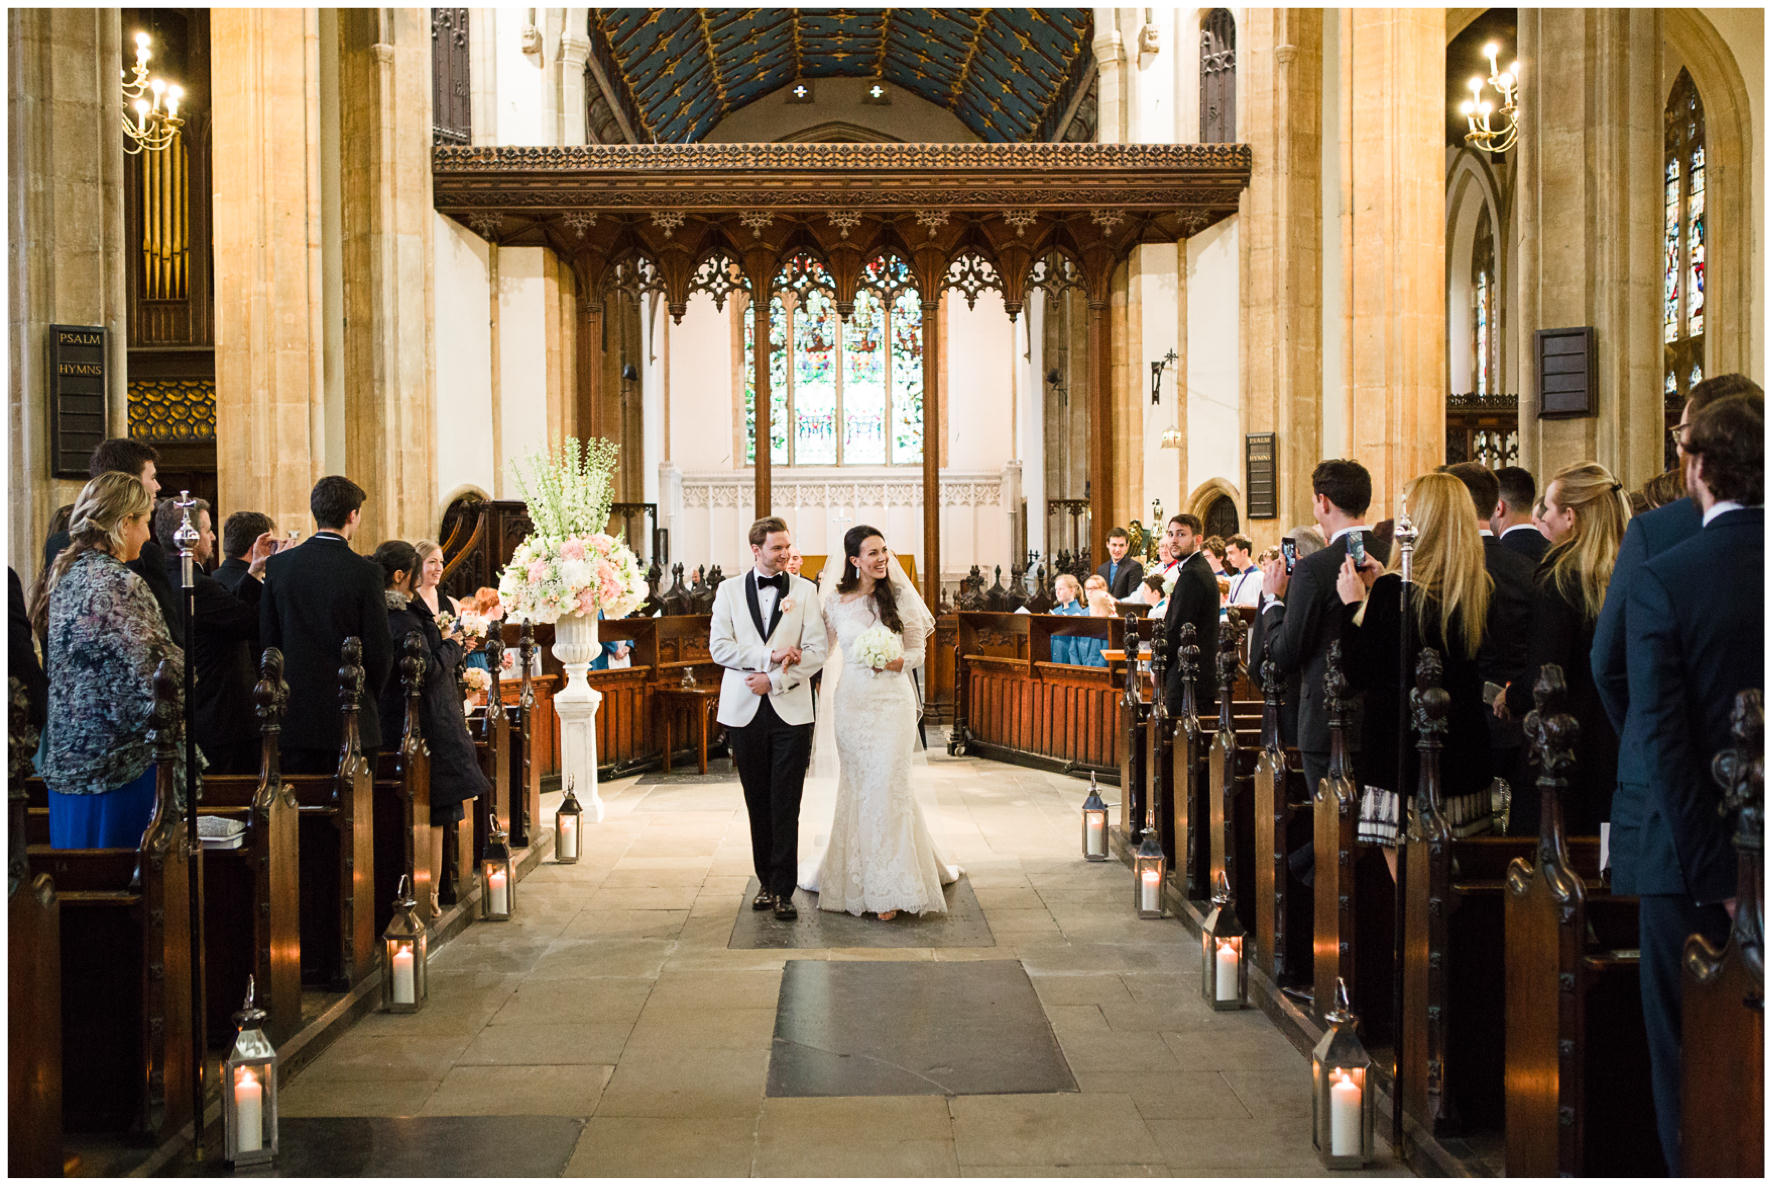 Lucy Davenport Photography, Katrina Otter Weddings, Chippenham Park, church wedding